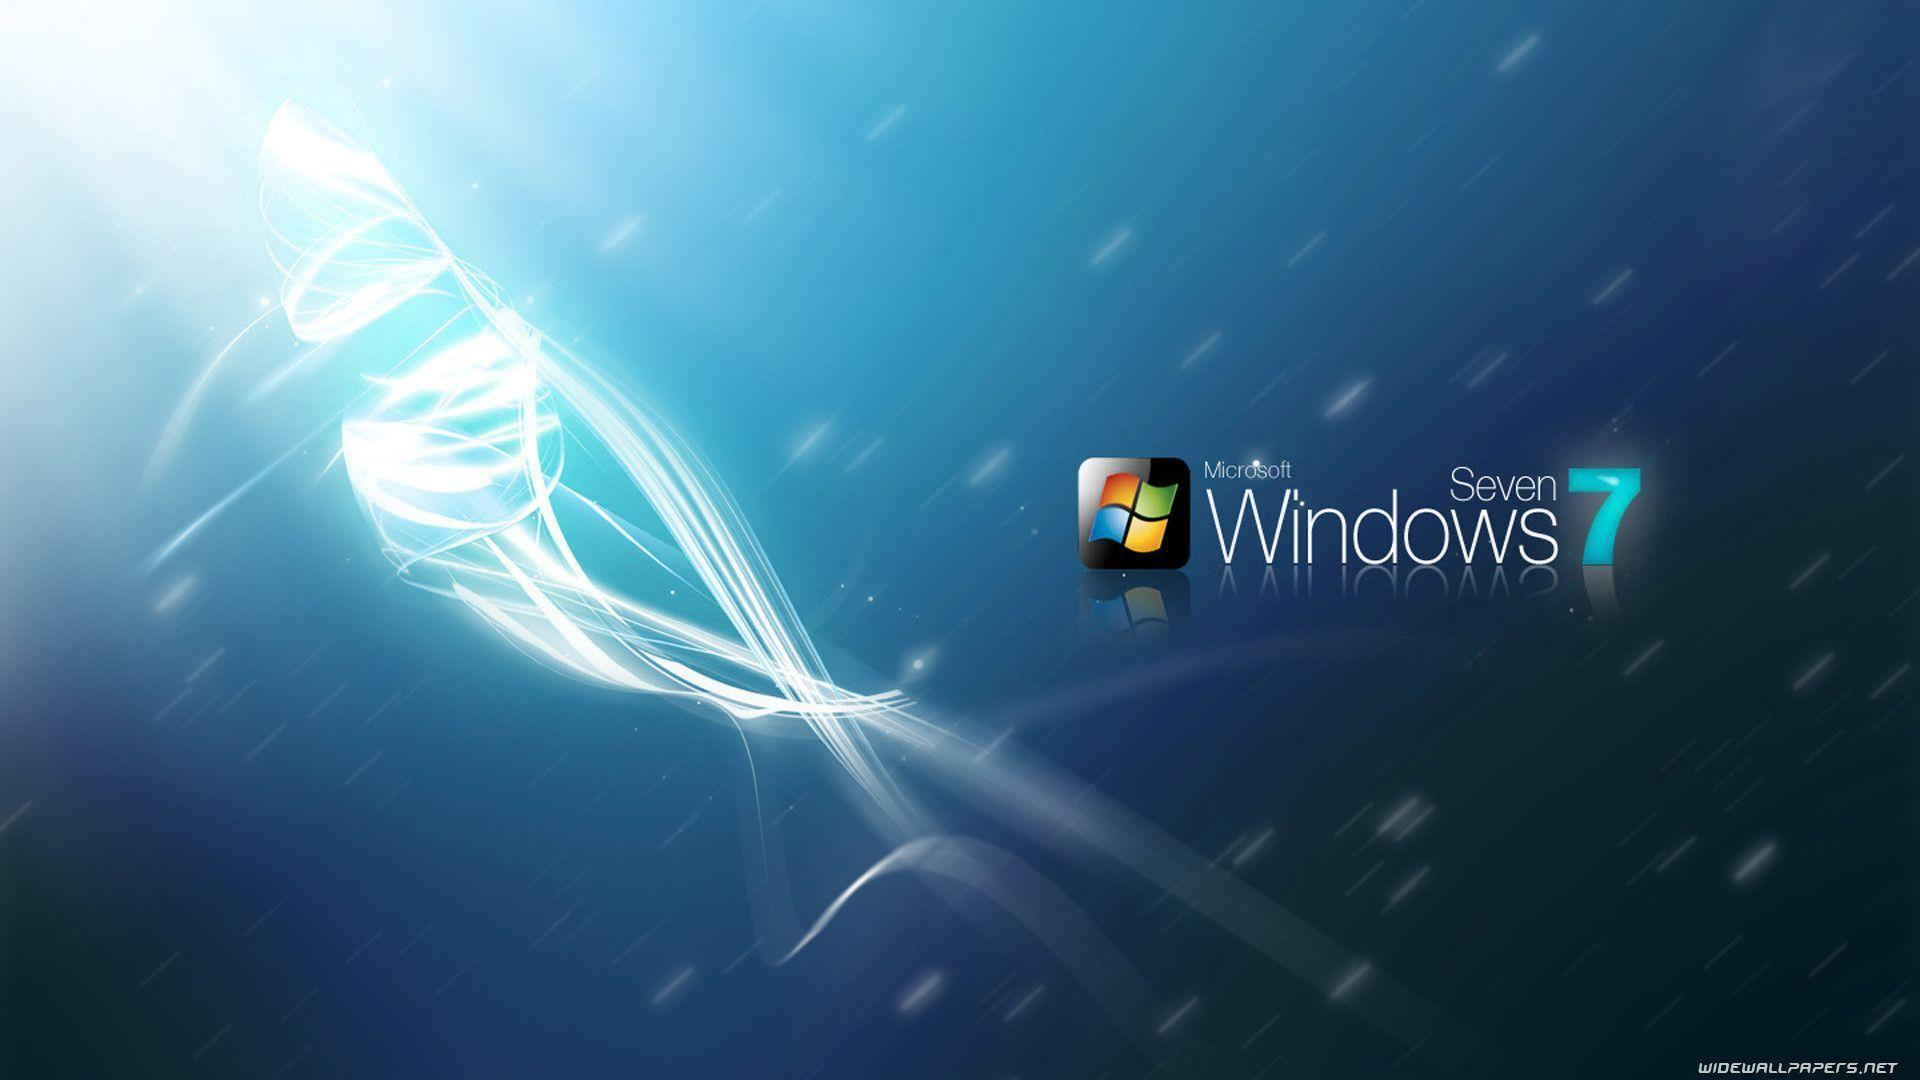 Заставка звезды для windows 7 скачать 6